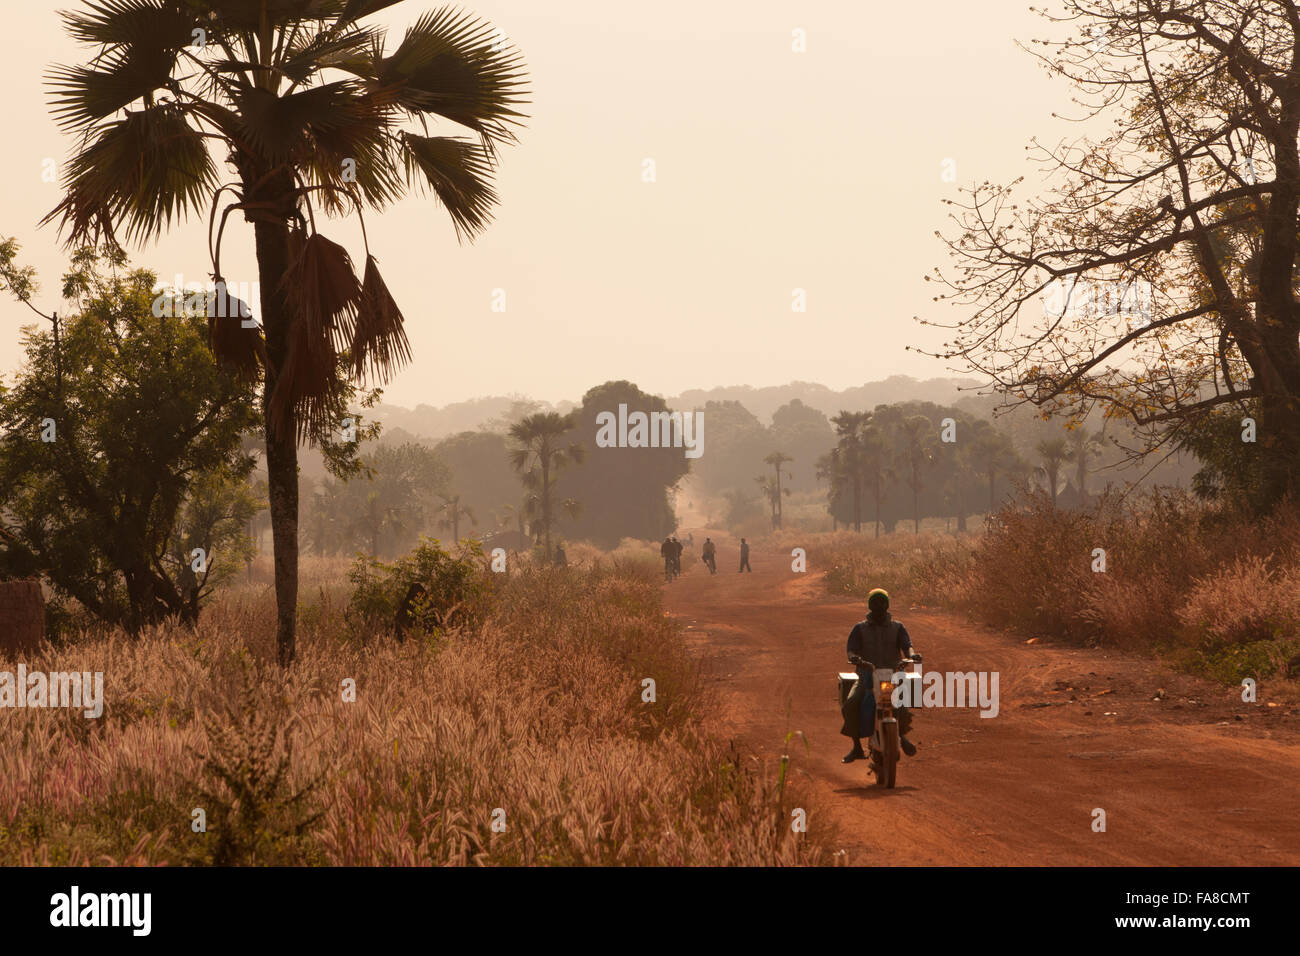 A motorcyclist travels down a dirt road in Tengréla Village, Banfora Department, Burkina Faso. - Stock Image